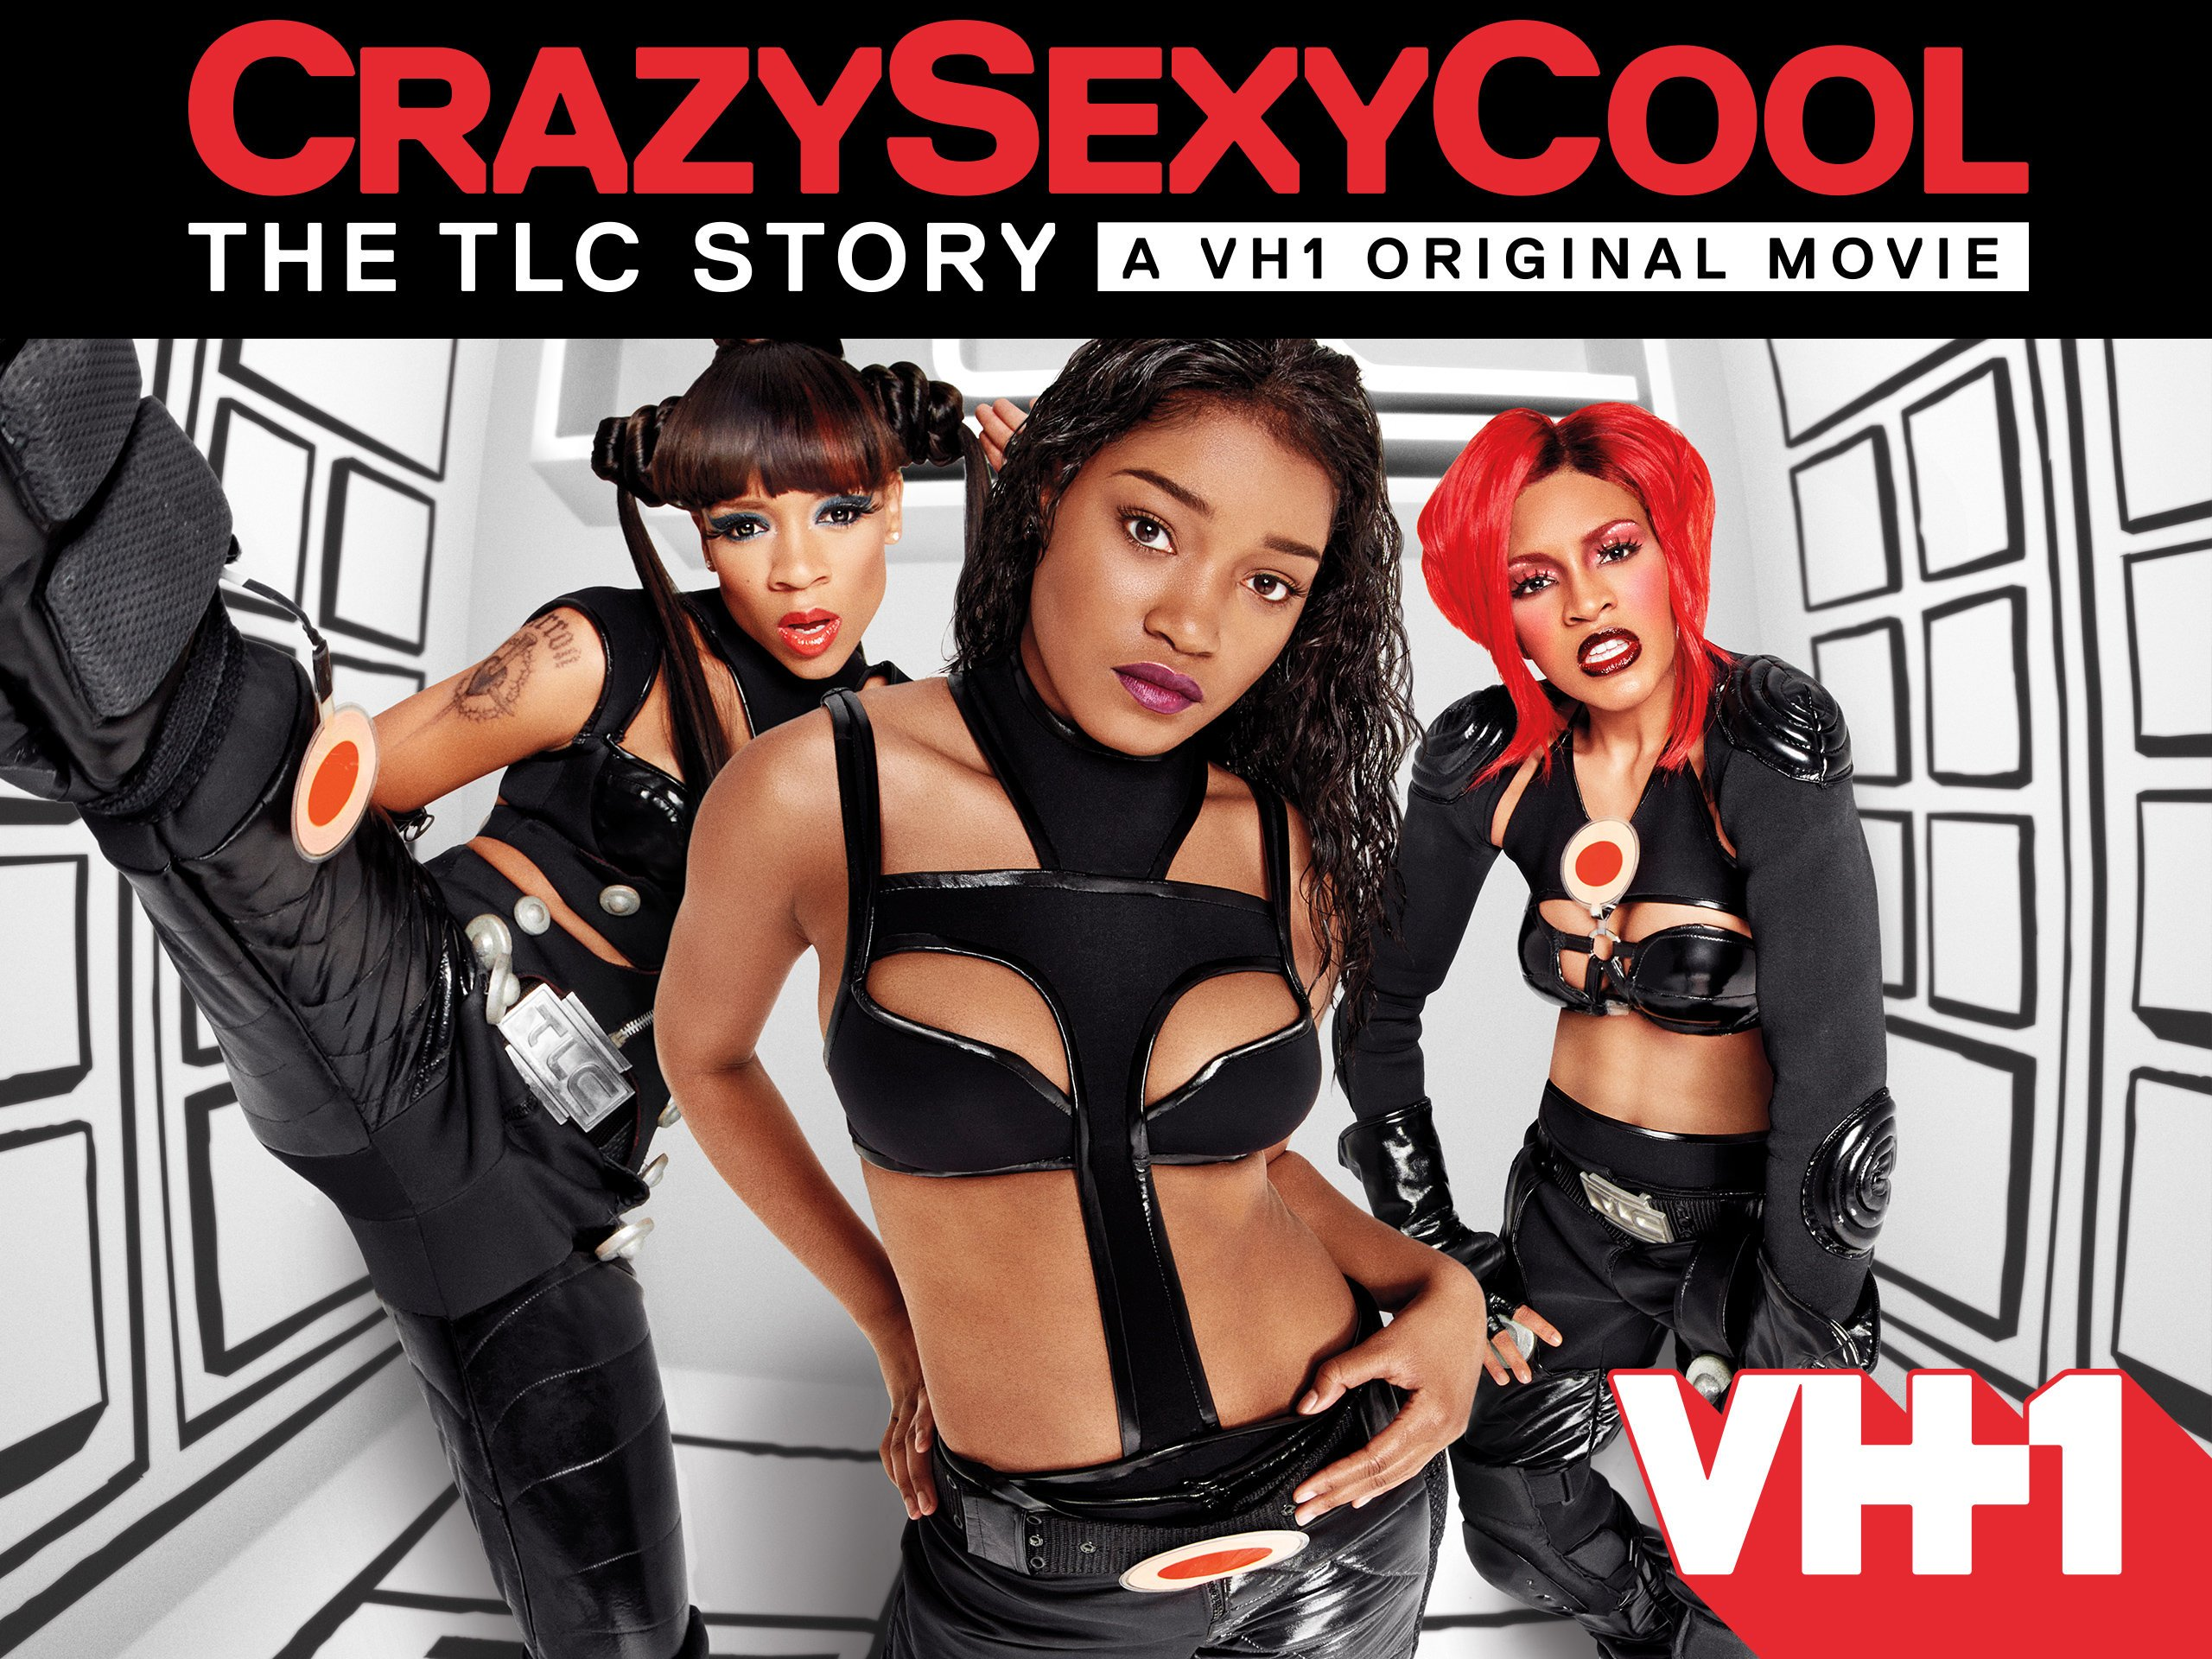 Crazysexycool full movie online